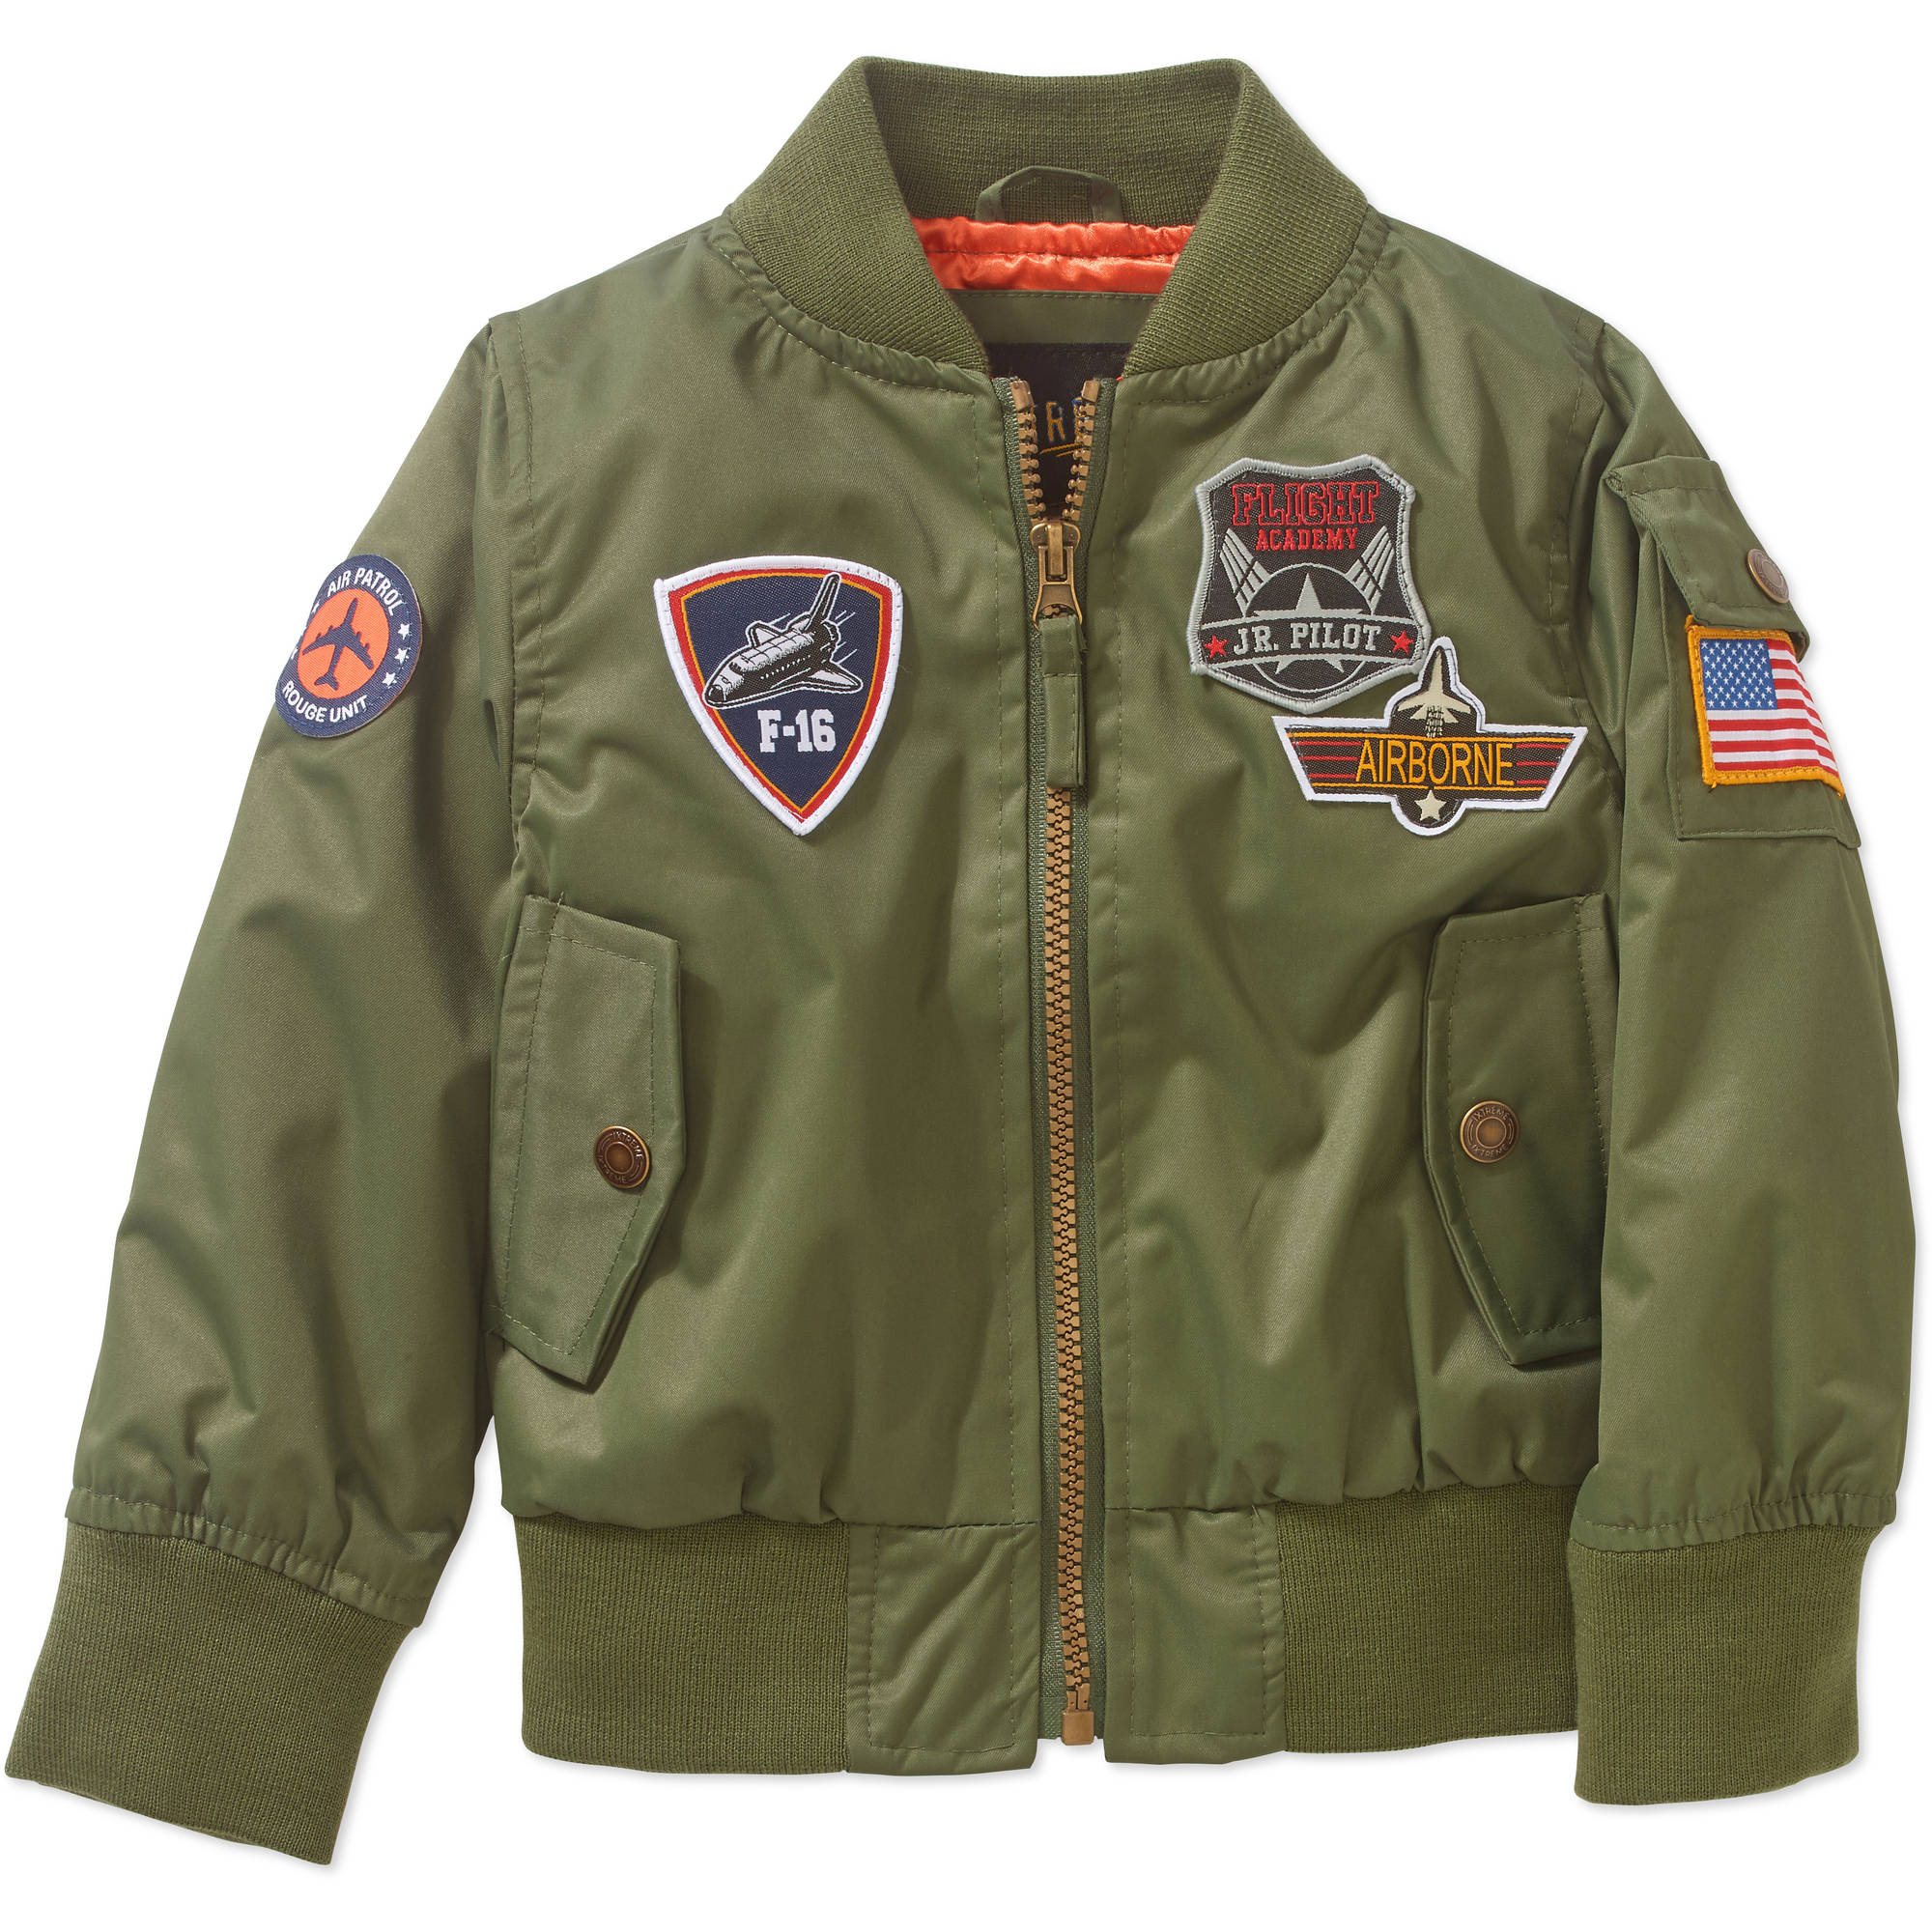 iXtreme Toddler Boys' Bomber Flight Jacket - Walmart.com